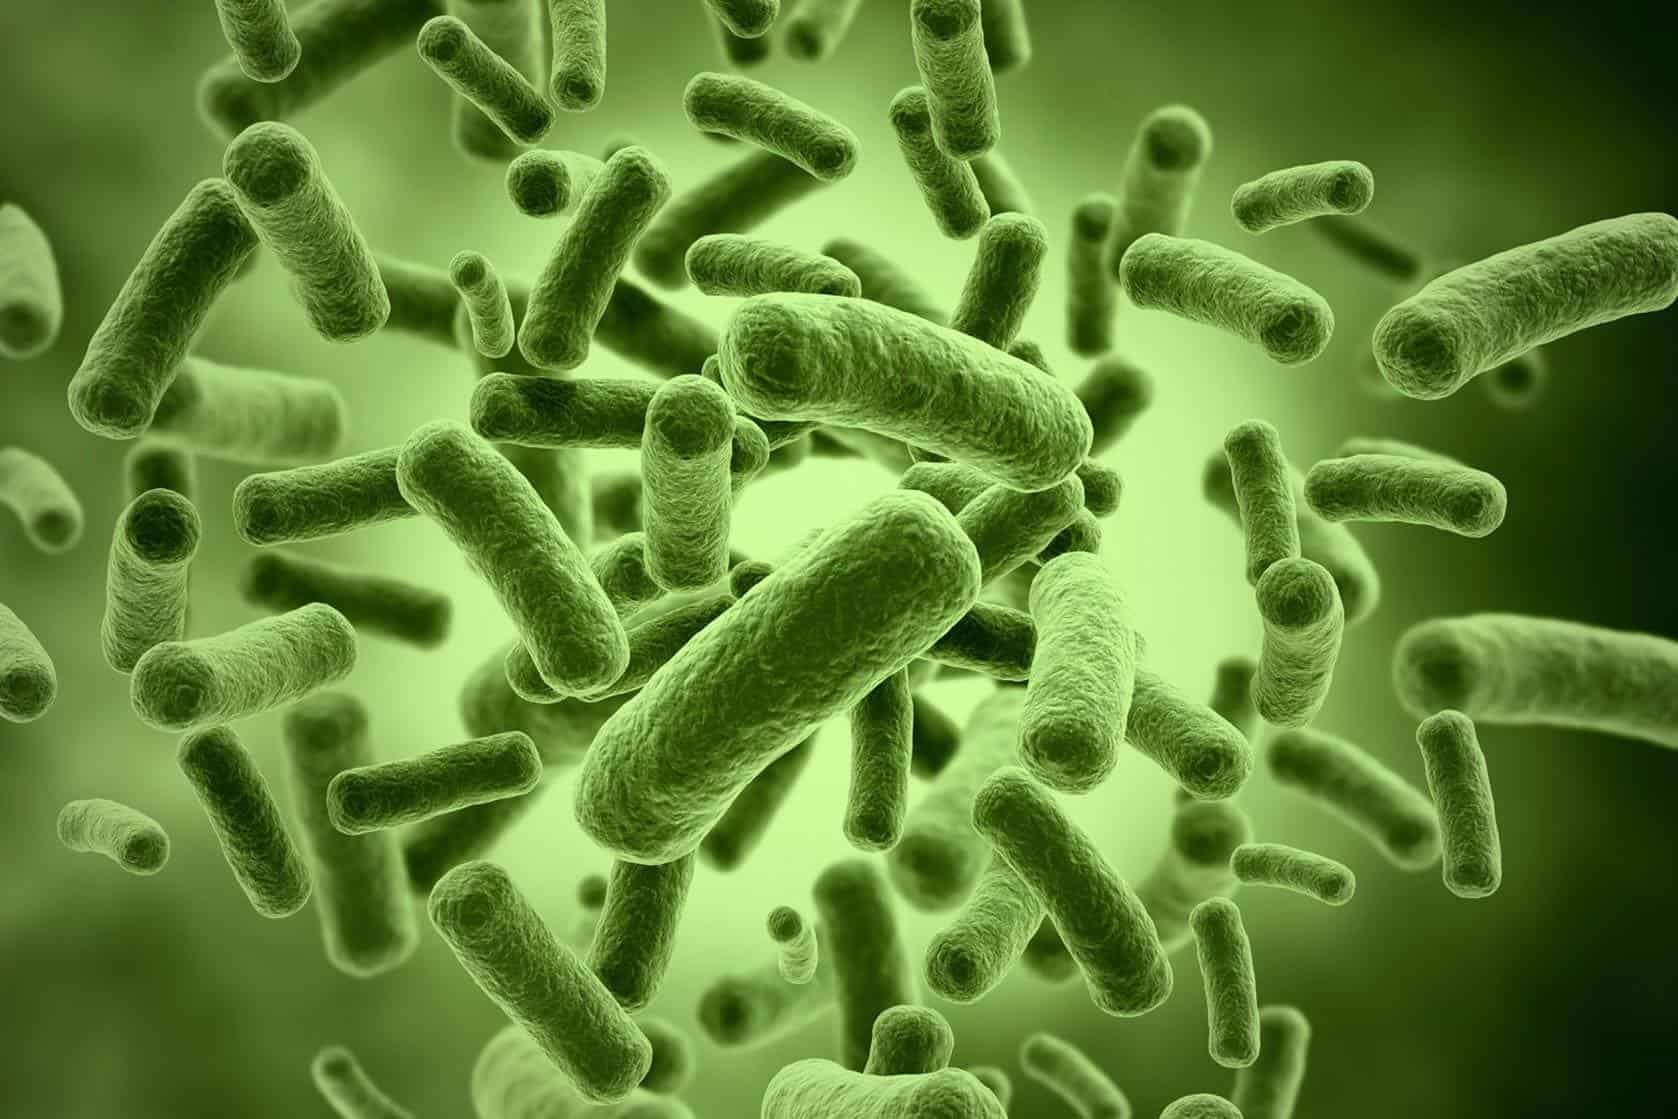 microscopic close-up of green bacteria